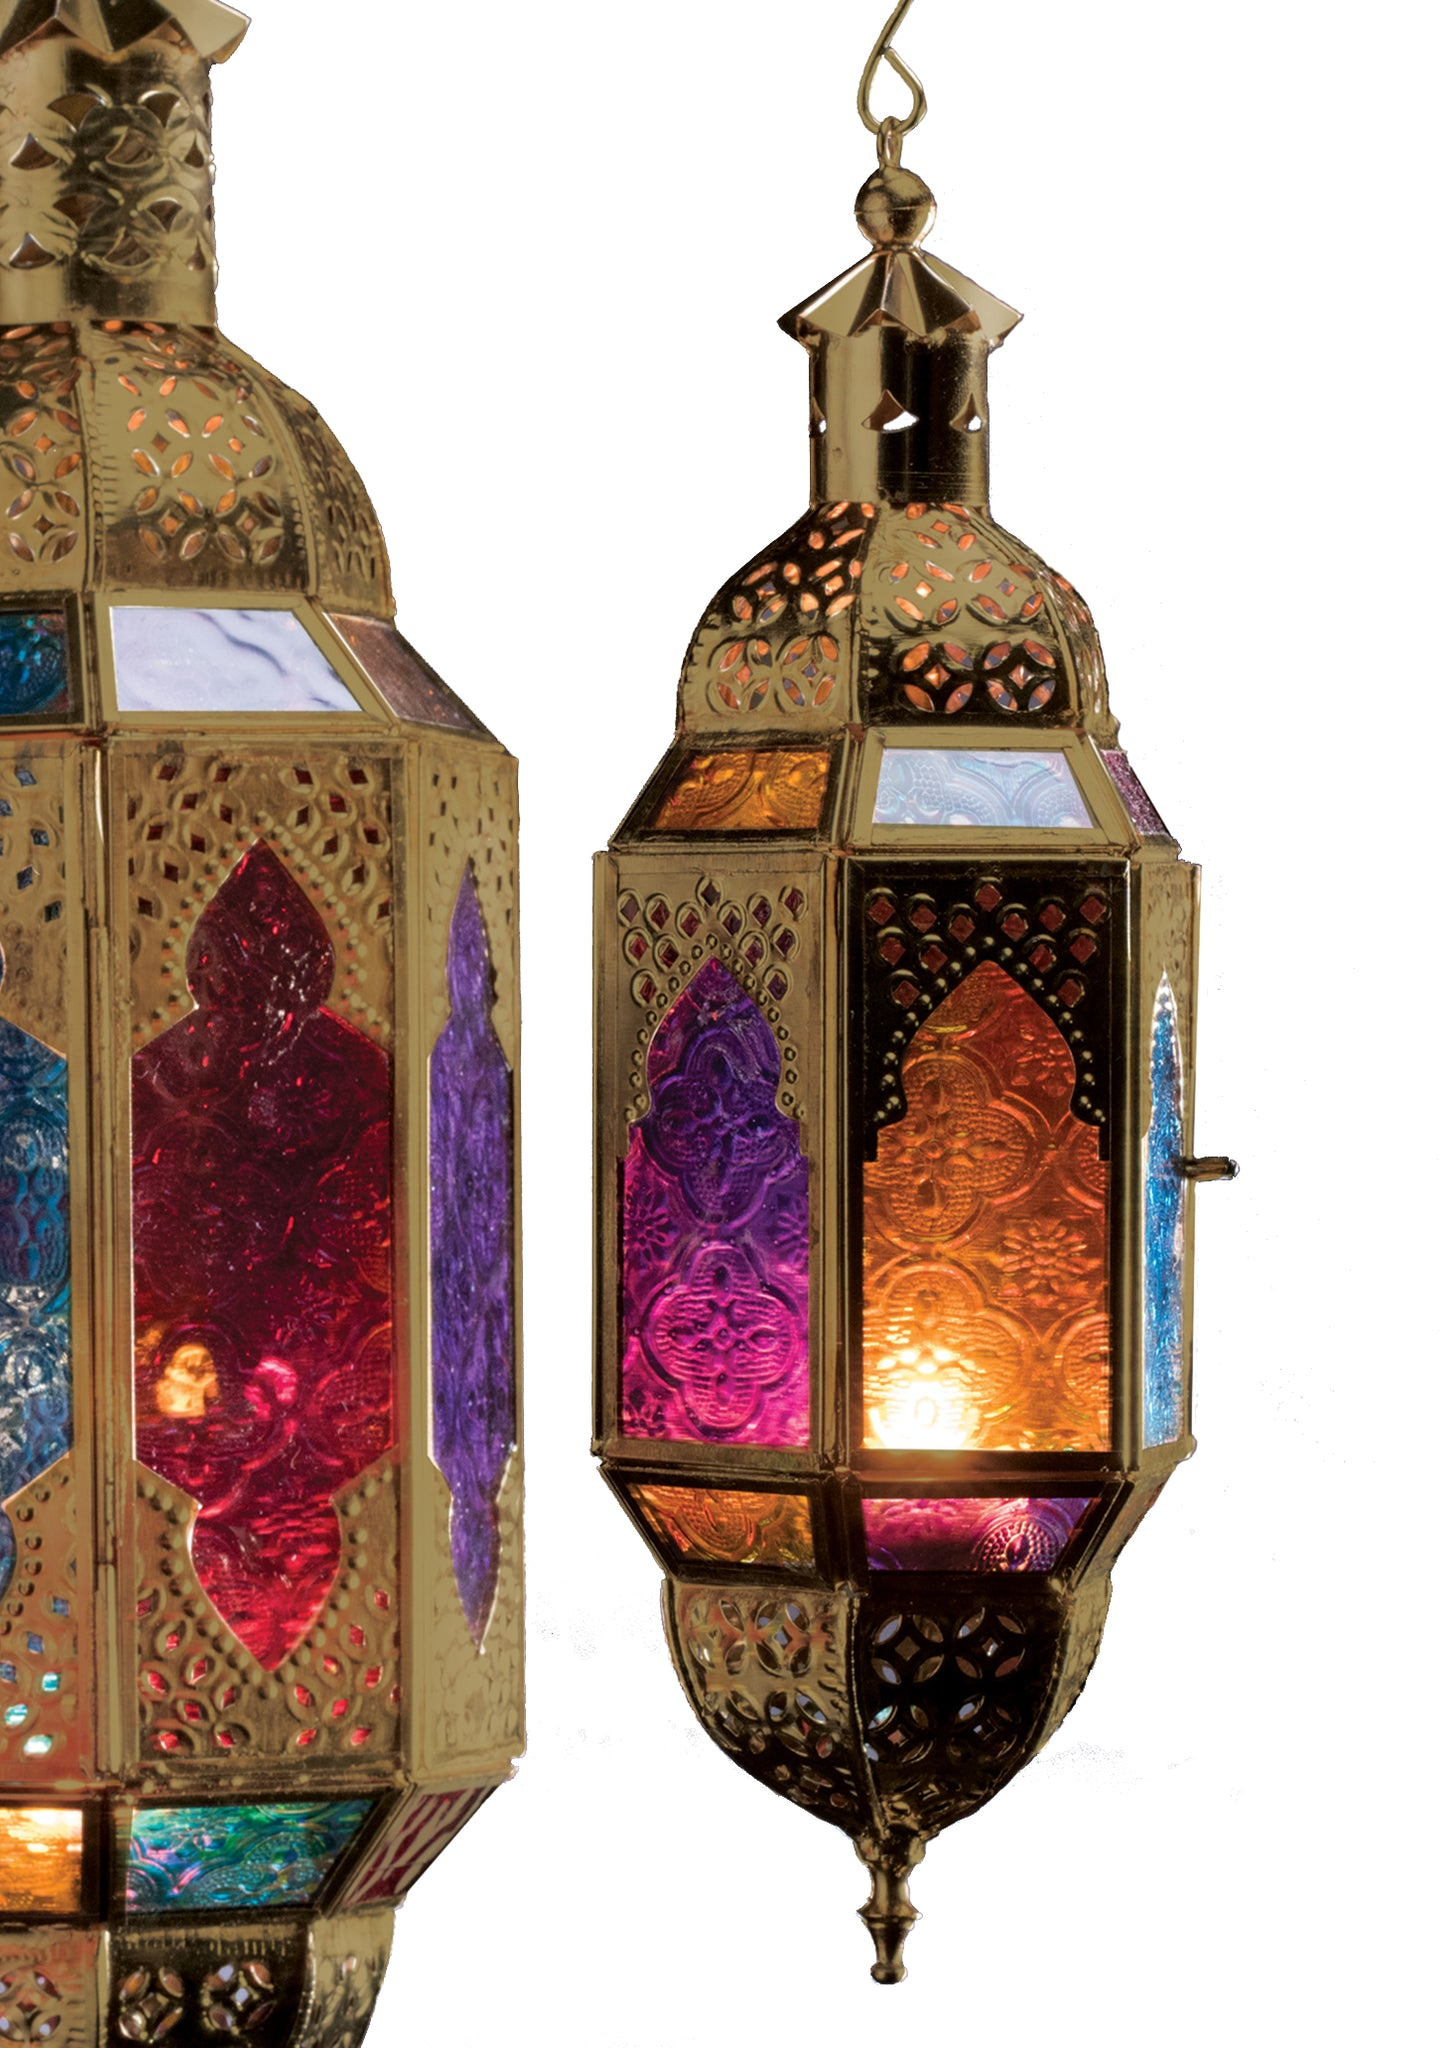 Gold coloured metalwork lantern with multicolour glass panels illuminated by a t-light on a white background